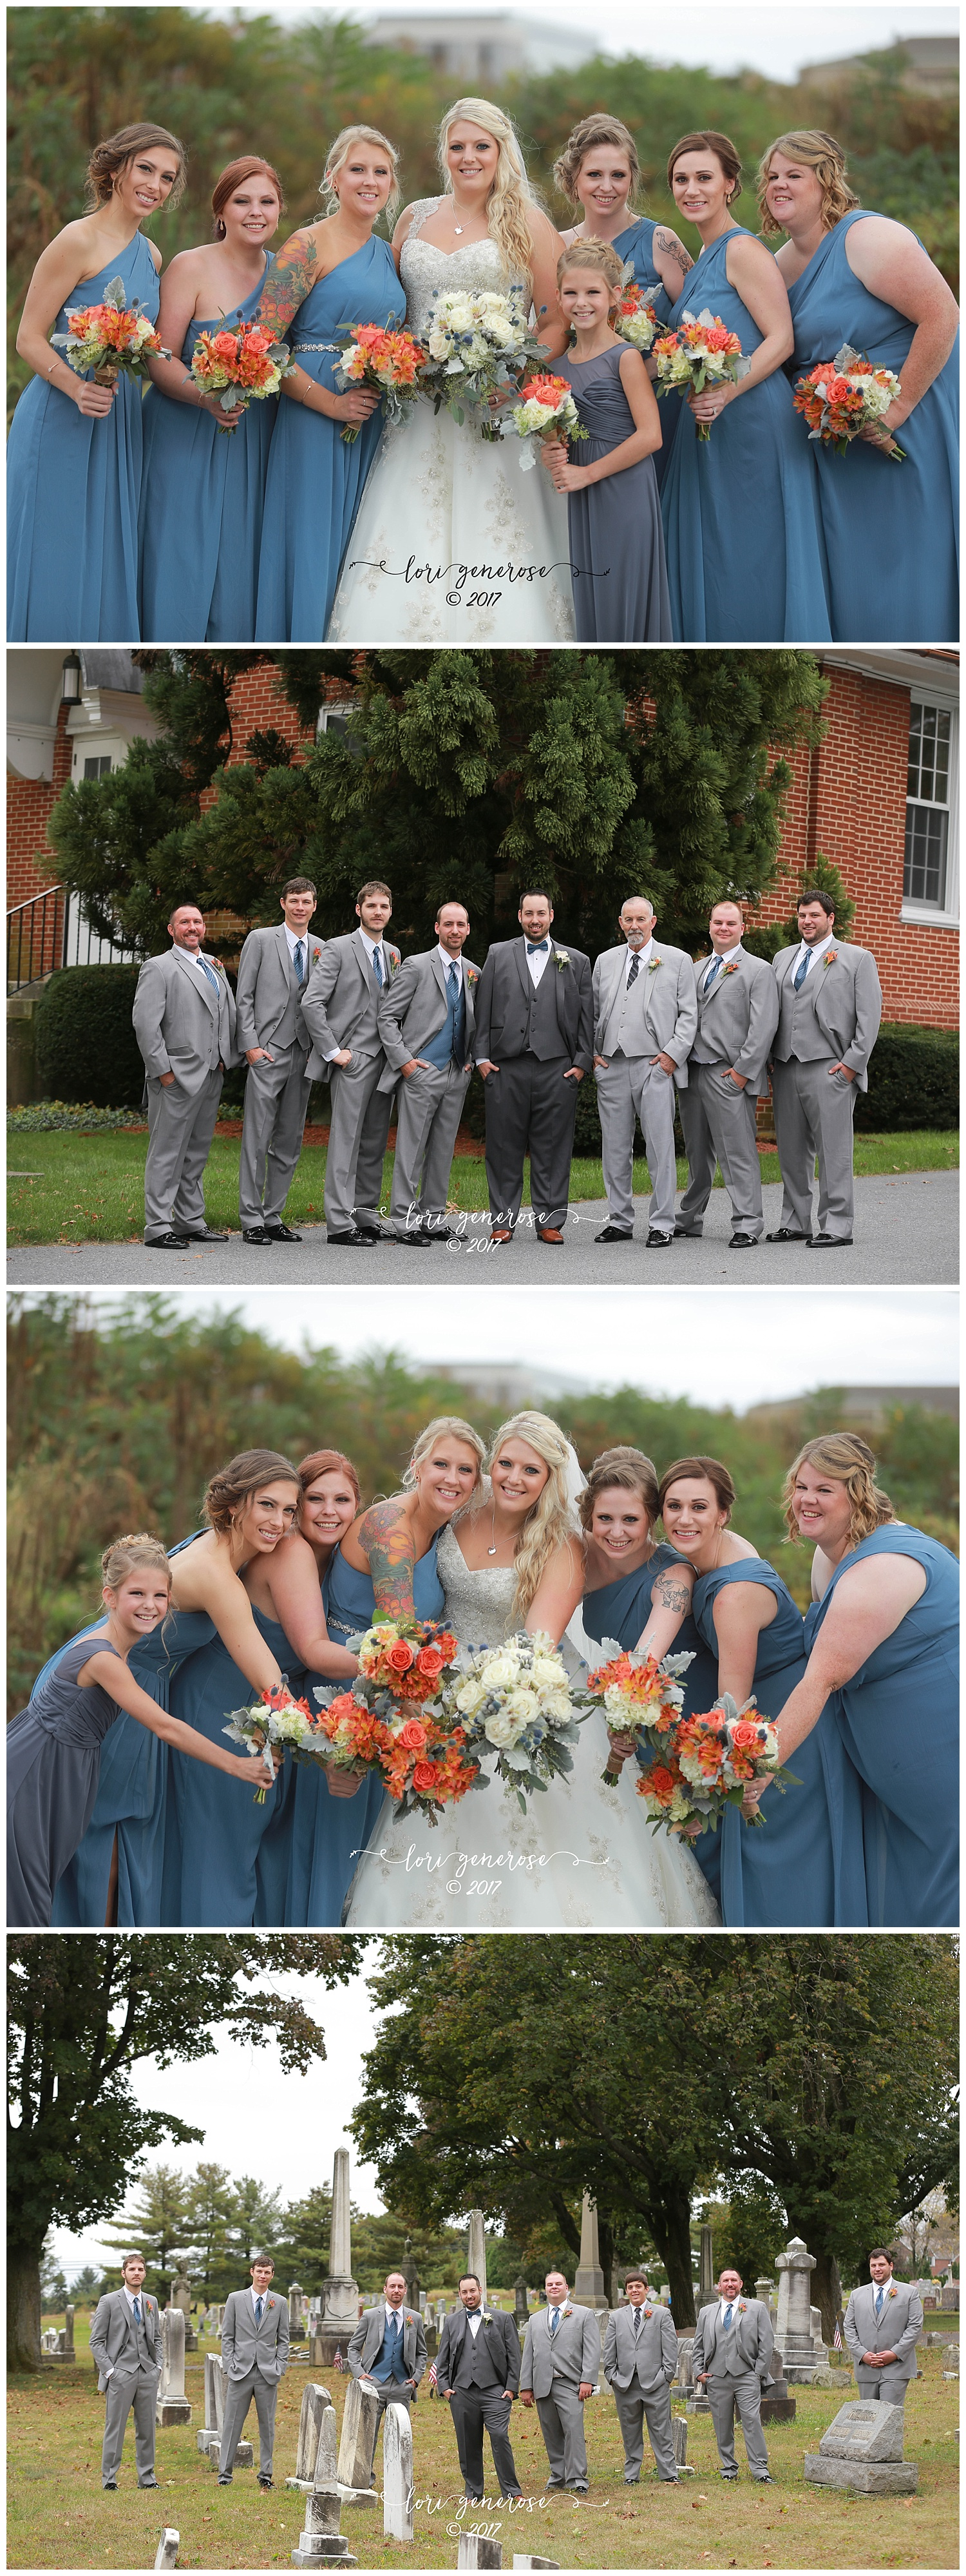 bridesmaidsinbluedressesgroomsmeningraysuitsfallwedding.jpg